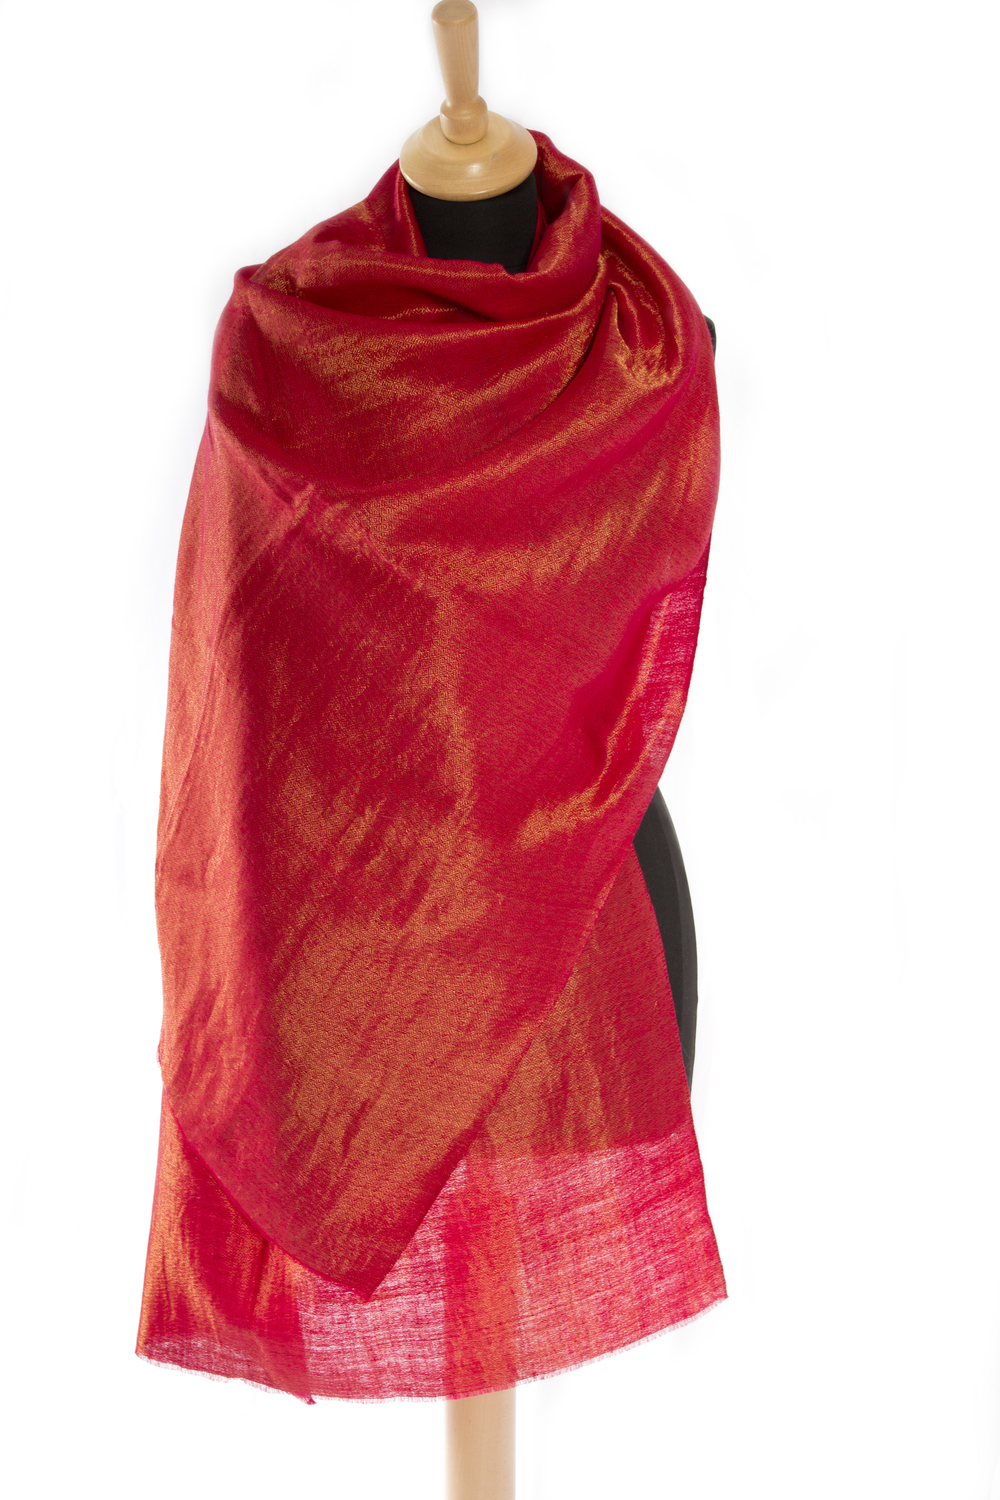 Reversible Red Gold Hand Spun Pashmina